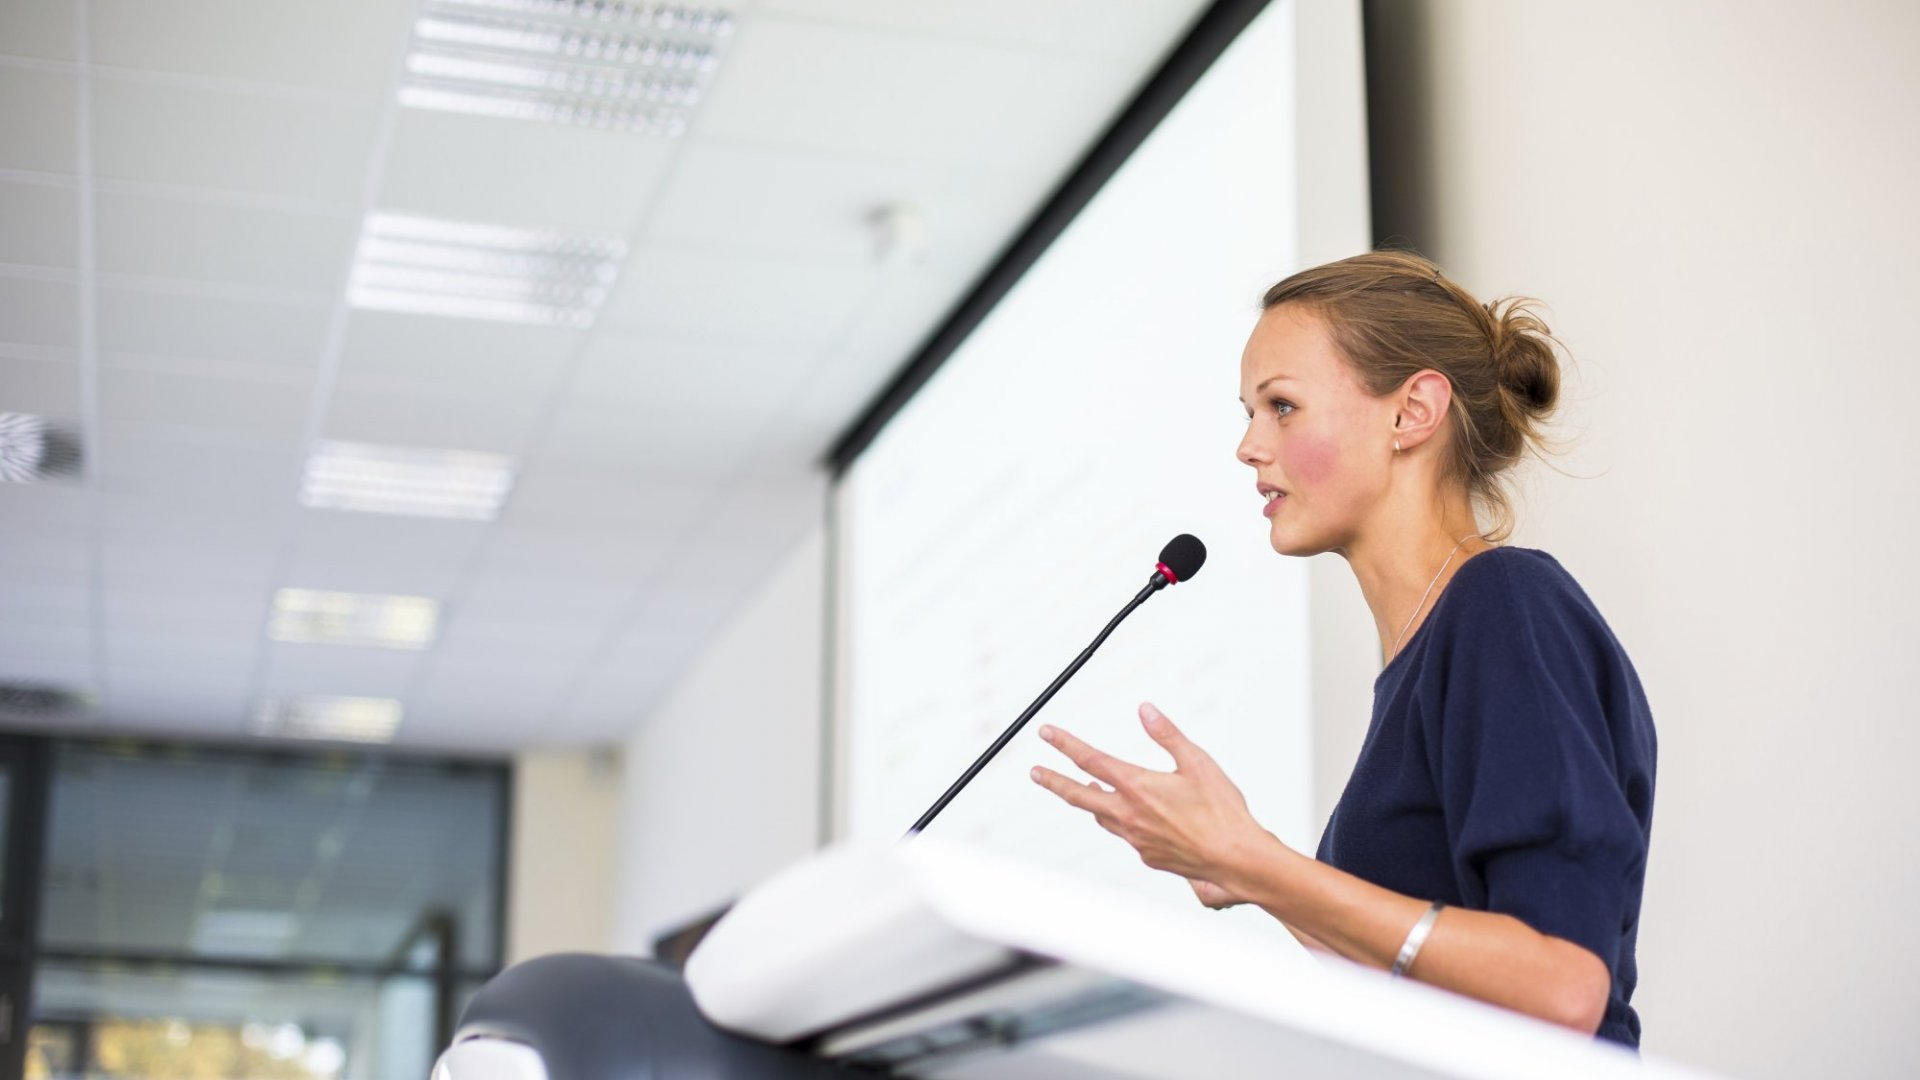 The 5-Step Plan That Will Help You Memorize a Speech in Less Than an Hour